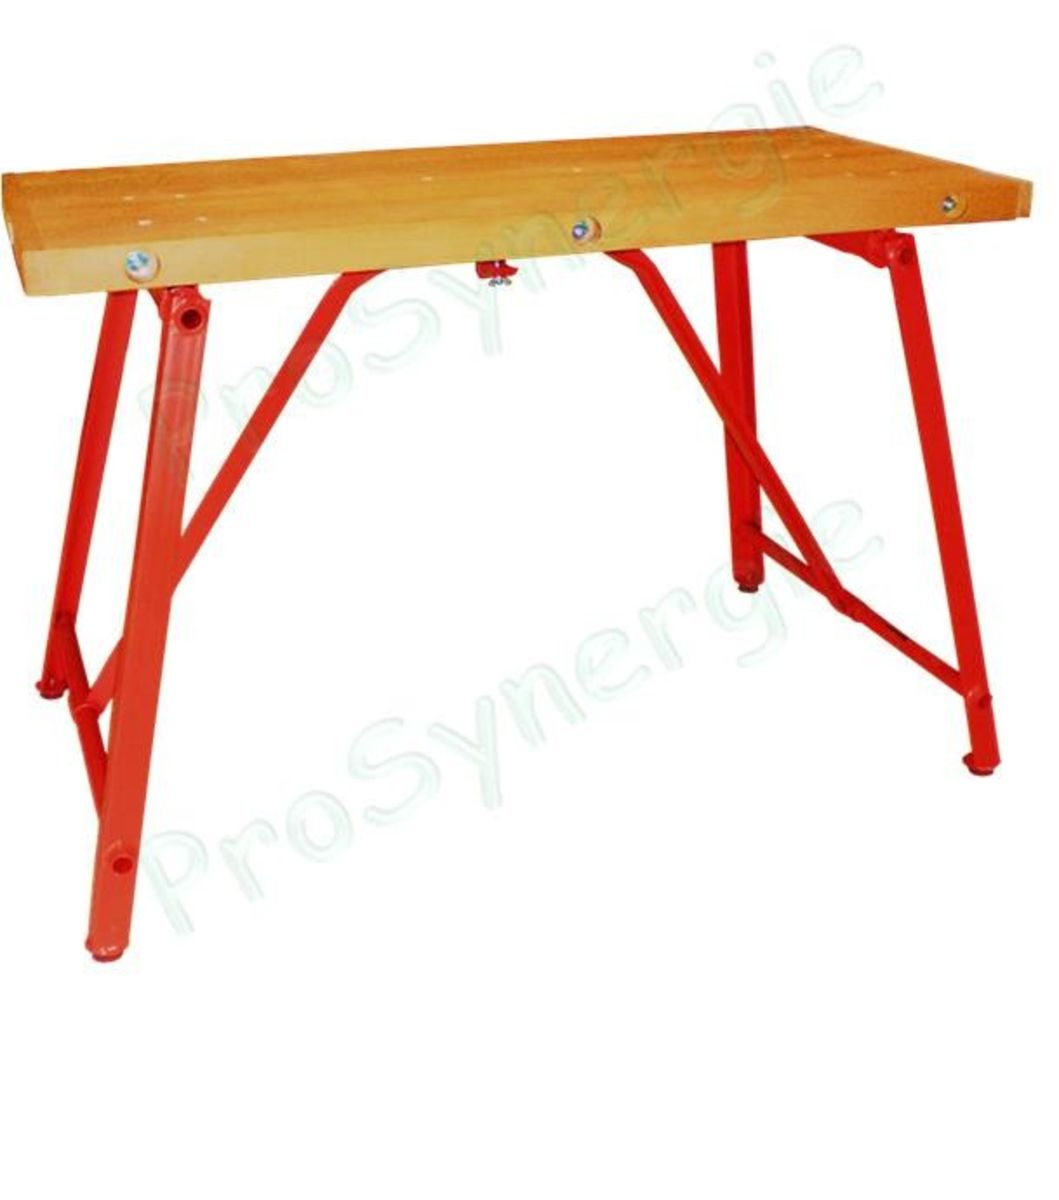 https://www.prosynergie.fr/Image/20697/1200x1200/table-de-monteur-renforcee-professionnelle-120-x-54-cm-ep-50-mm.jpg